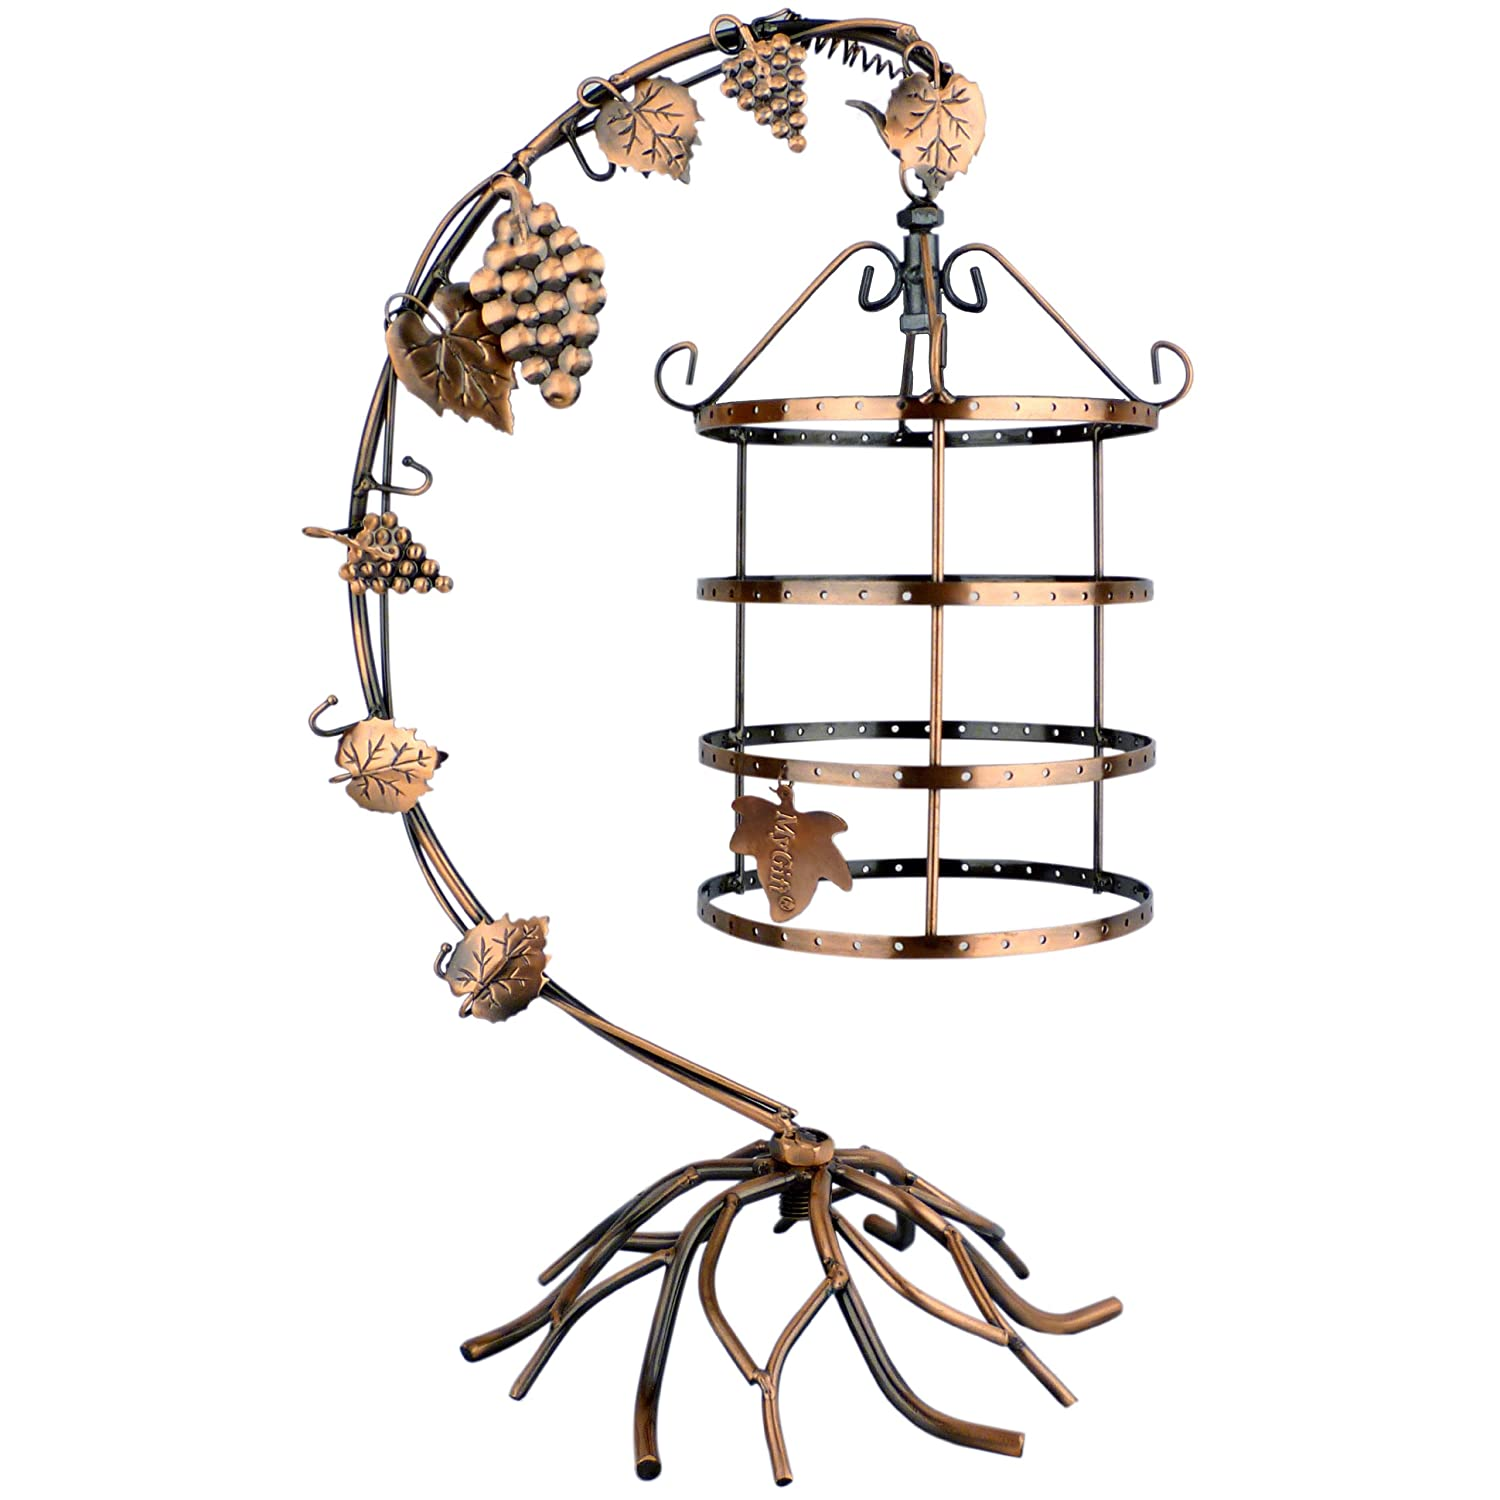 Inspired by nature this elegantly designed jewellery stand is a perfect addition to your home or makes a great gift. Featuring plenty of branches to hold your precious treasures, this stand is the perfect way to store and display your favourite jewellery.